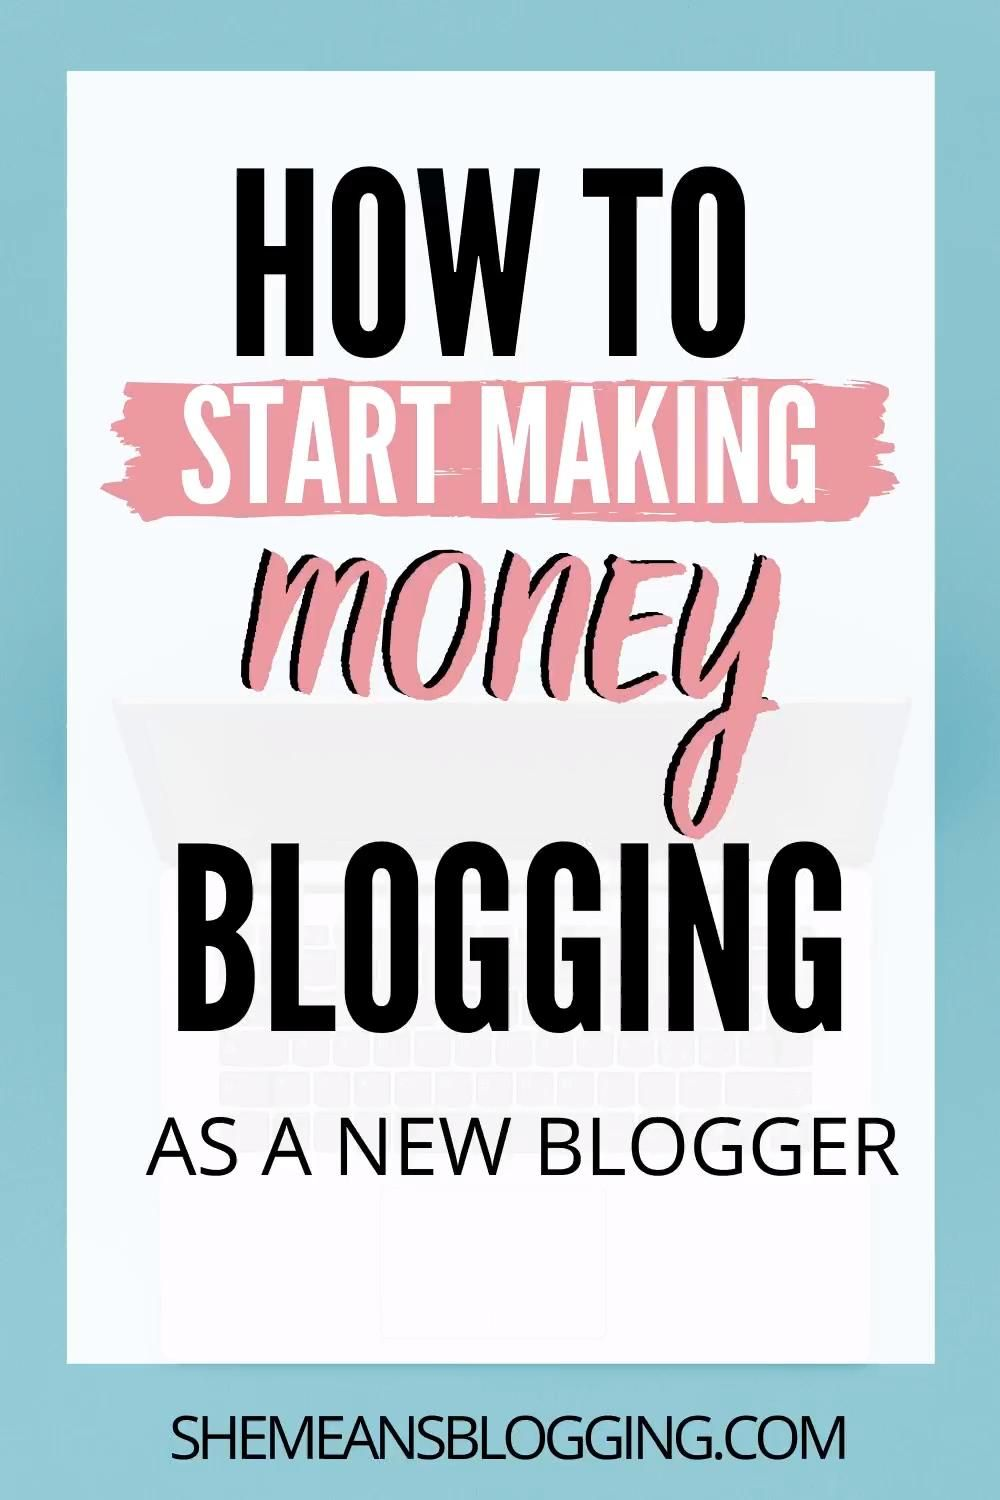 Started a new blog? Learn how to start making money blogging as a new blogger even if when it's so challenging! These beginner blogging tips are perfect for you if you want to make money as a new blogger #makemoneyblogging #bloggingtips #makemoneyonline